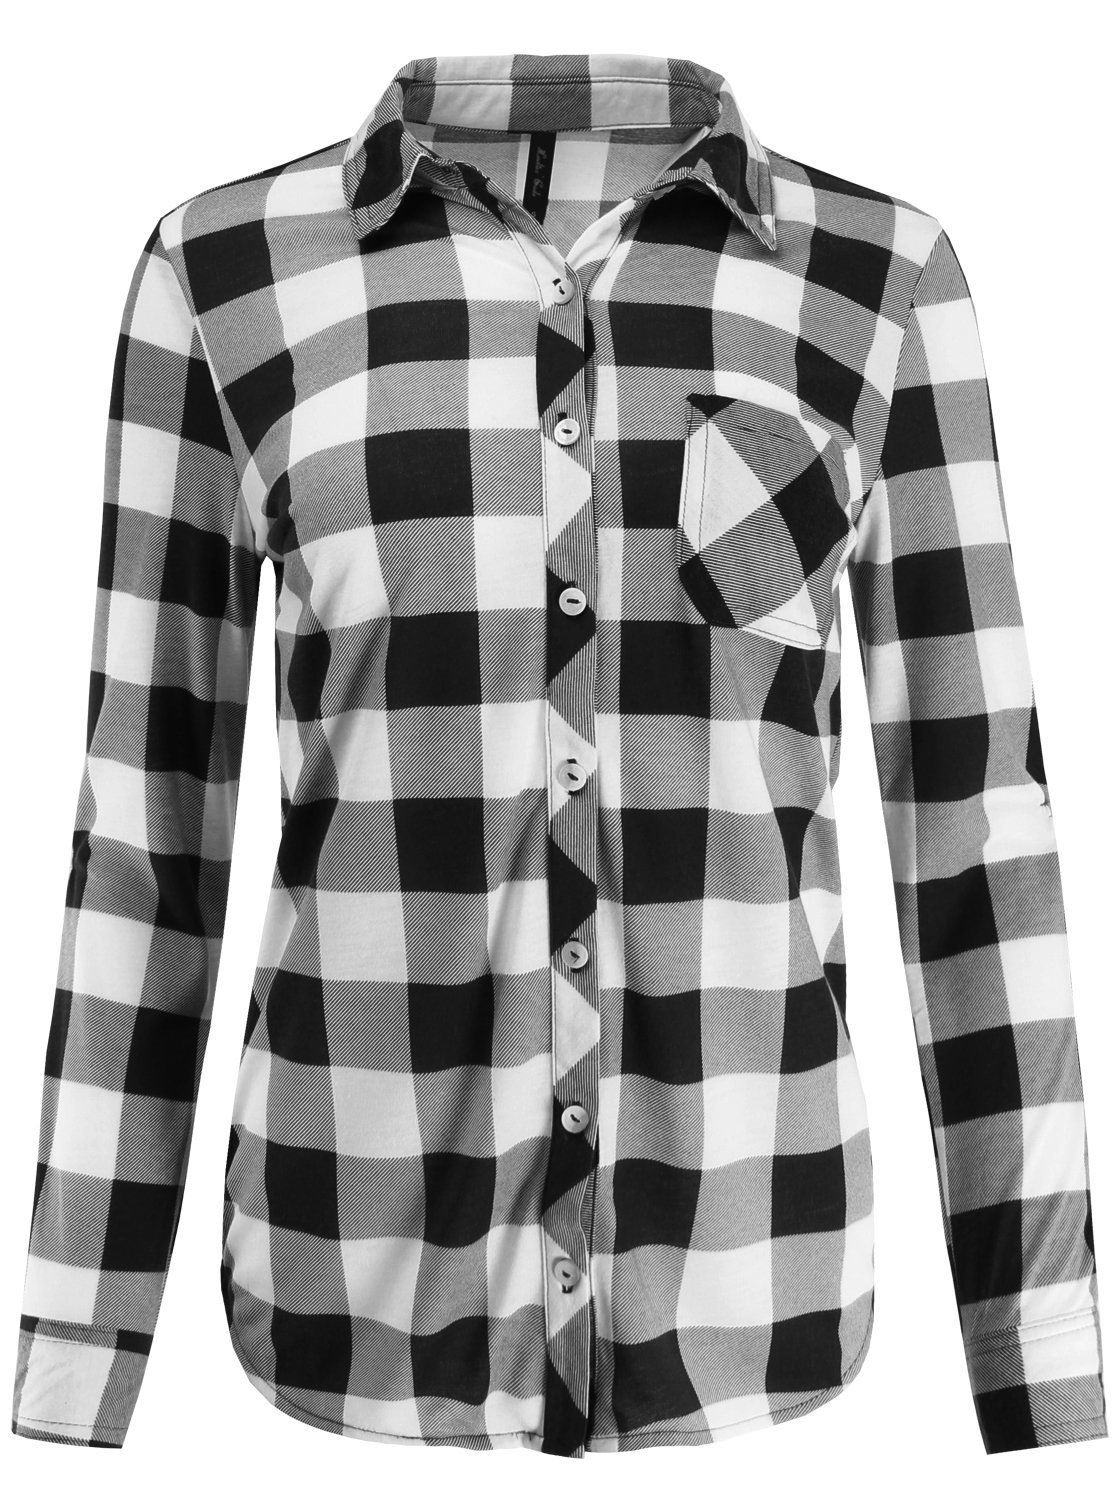 9faf86180 Ladies' Code Women's Knit Plaid Button Down Shirt Roll Up Sleeve product  image